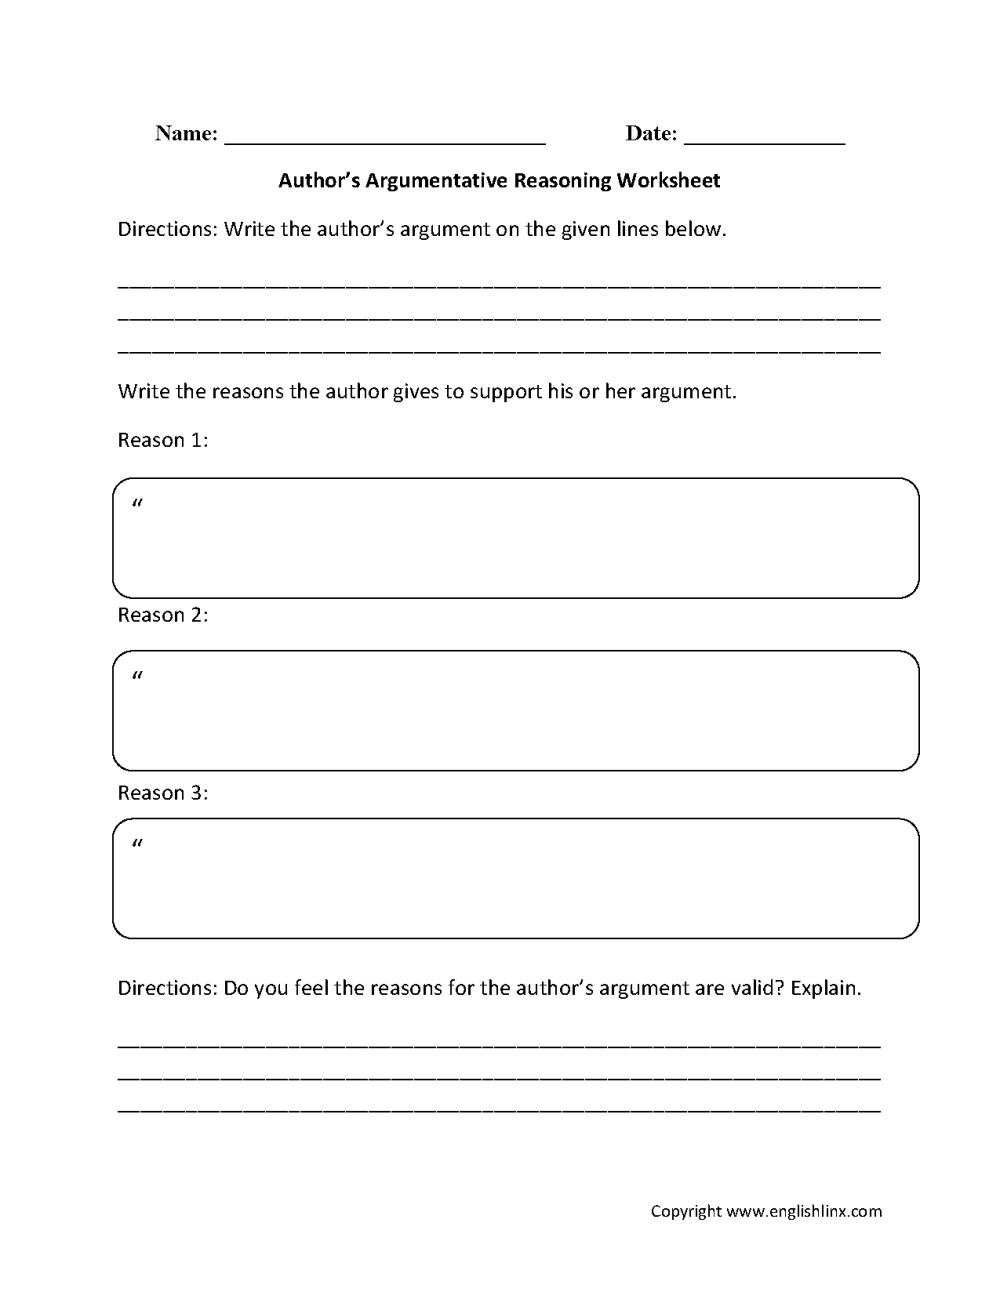 medium resolution of Reading Comprehension Worksheets   Author's Argumentative Reasoning Reading  Comprehension Worksheets